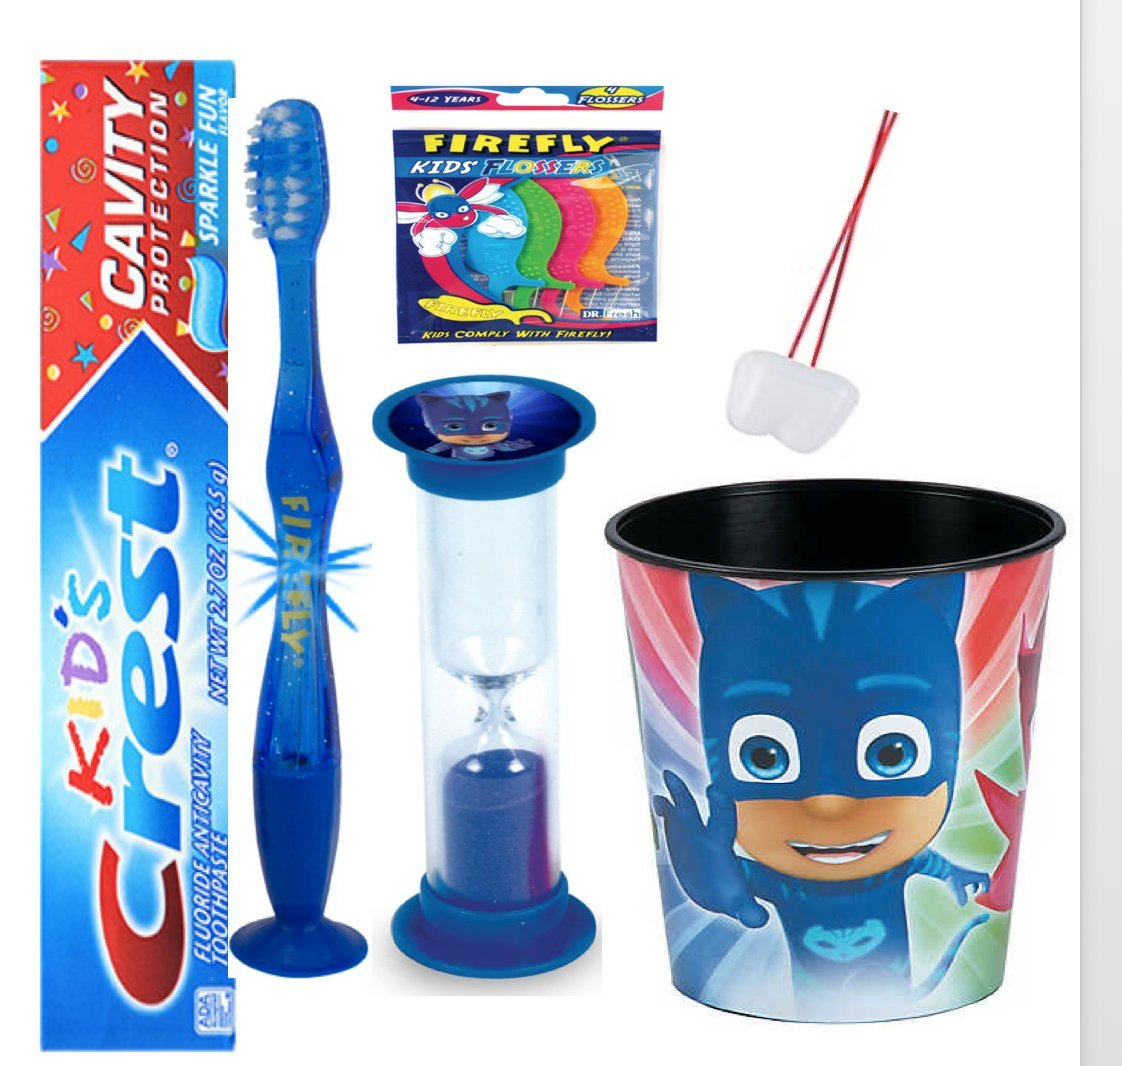 """PJ Masks """"Catboy"""" inspired 4pc Bright Smile Oral Hygiene Bundle! Flashing Lights Toothbrush, Toothpaste, Brushing Timer &Mouthwash Rinse Cup! Plus Bonus Flossers &Tooth Necklace as Visual Aid Reminder"""